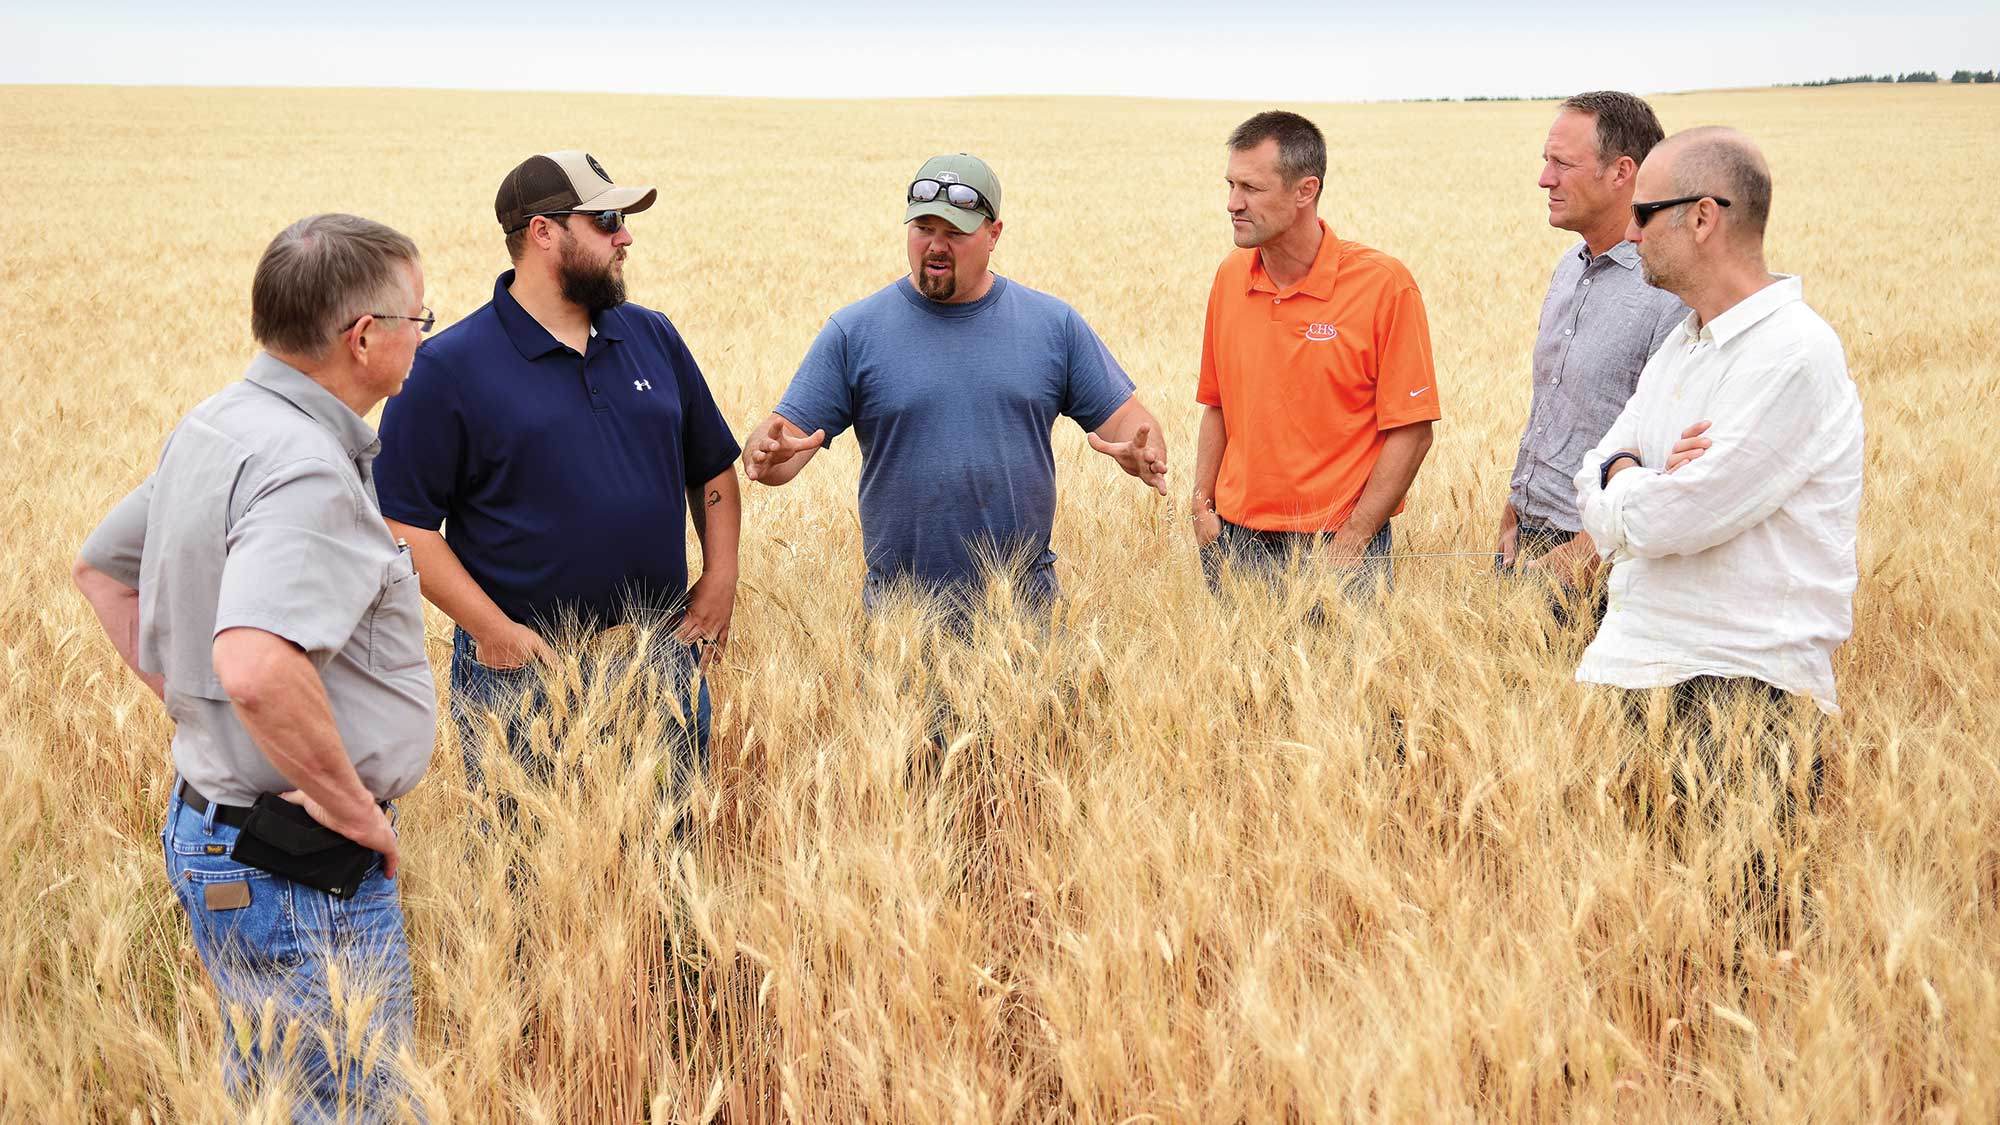 North Dakota farmer stands in a wheat field with his grain marketing team and global customers